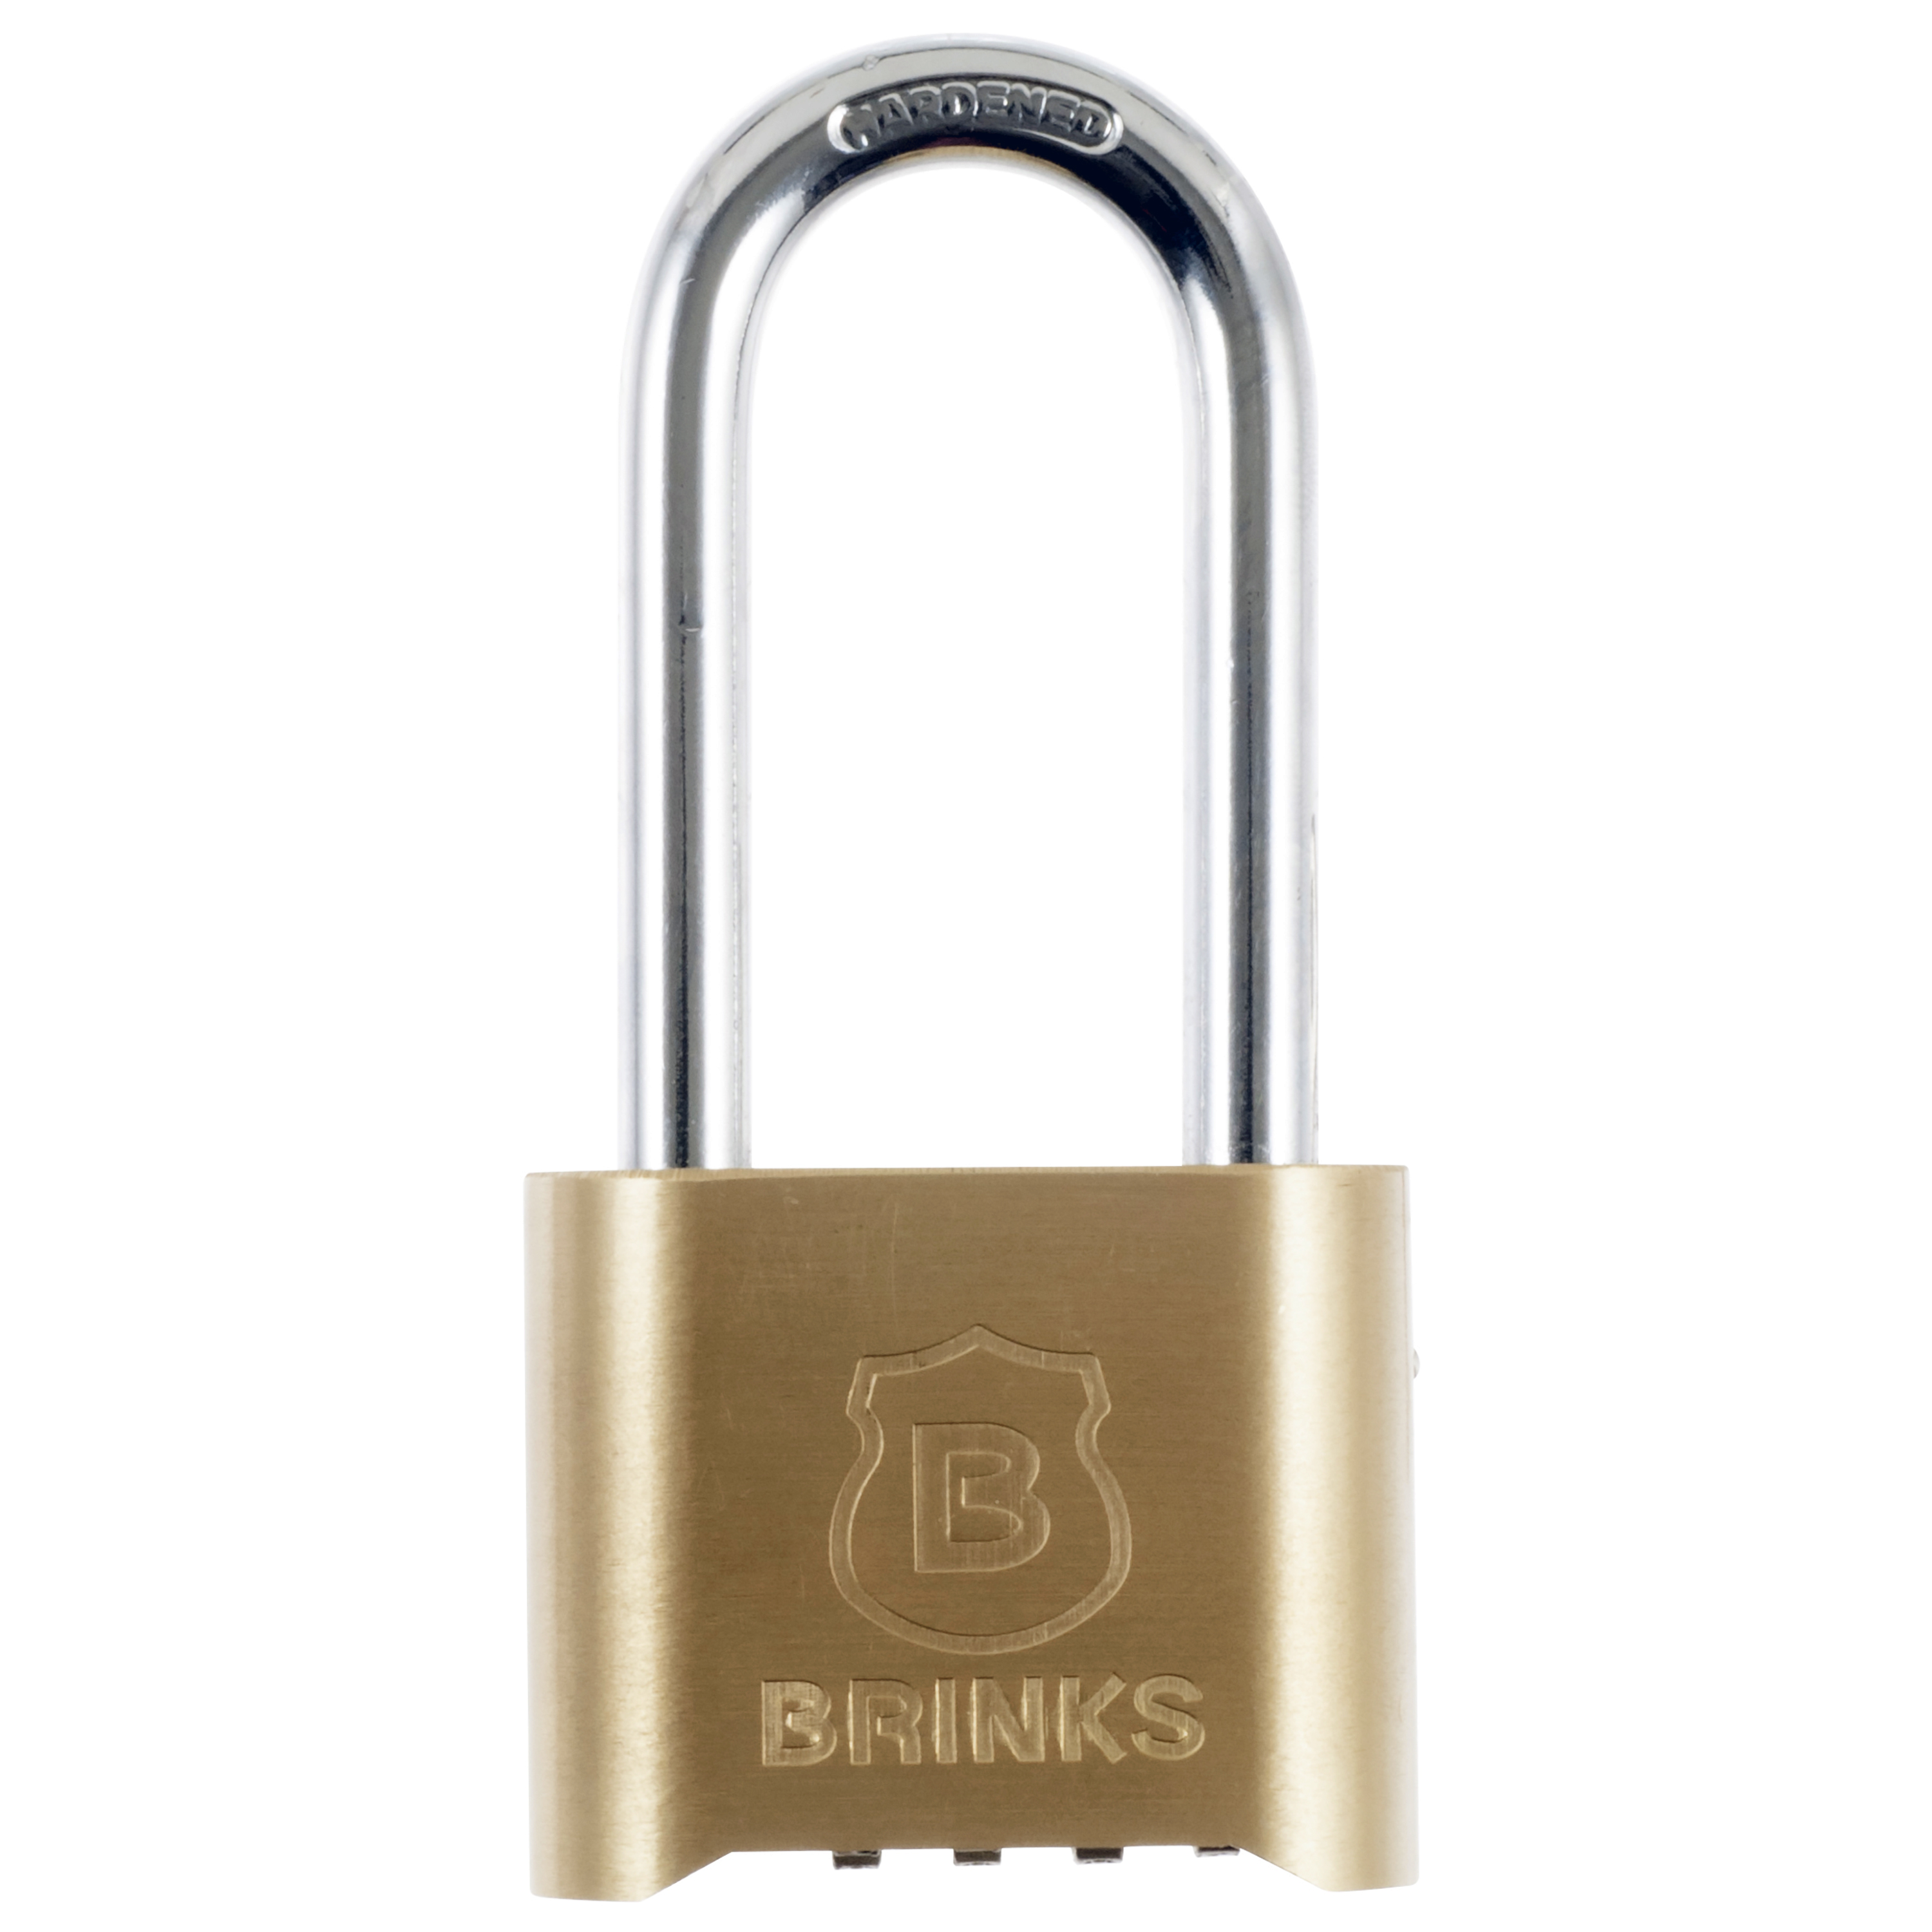 Heavy Duty Padlock Waterproof for Outdoor Use Extra Long Shackle Set of 2 50mm